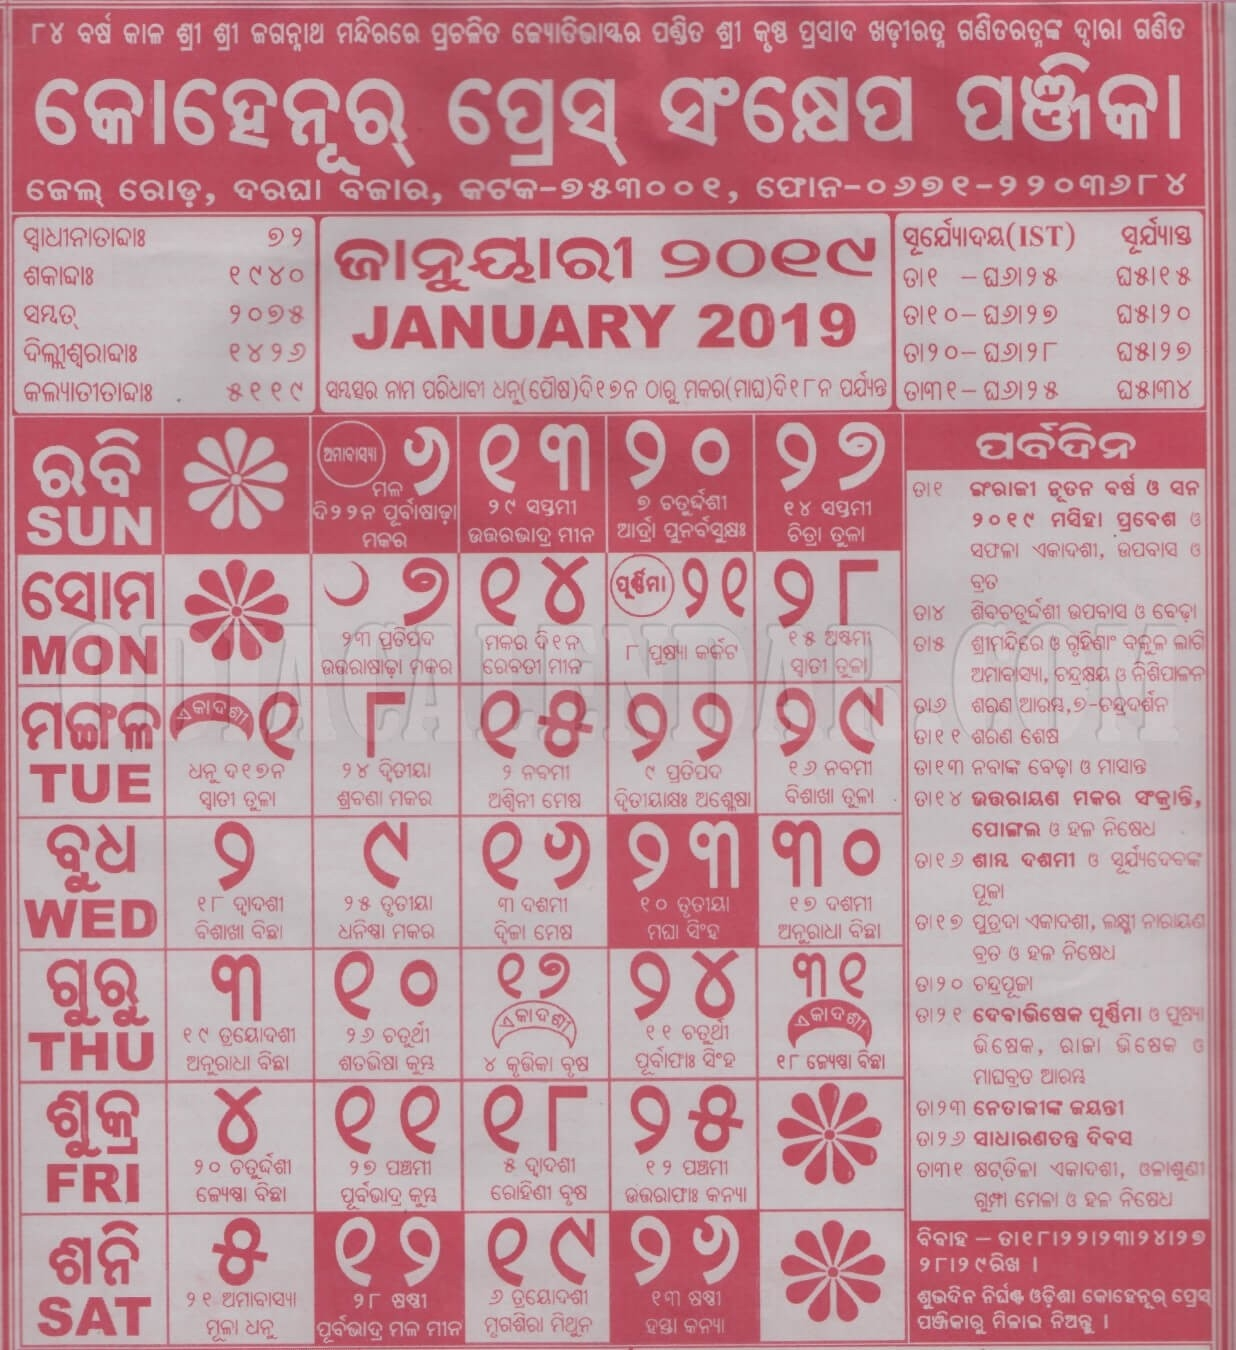 Odia Kohinoor Calendar 2019 January View And Download Free-Odia Calendar 2020 January